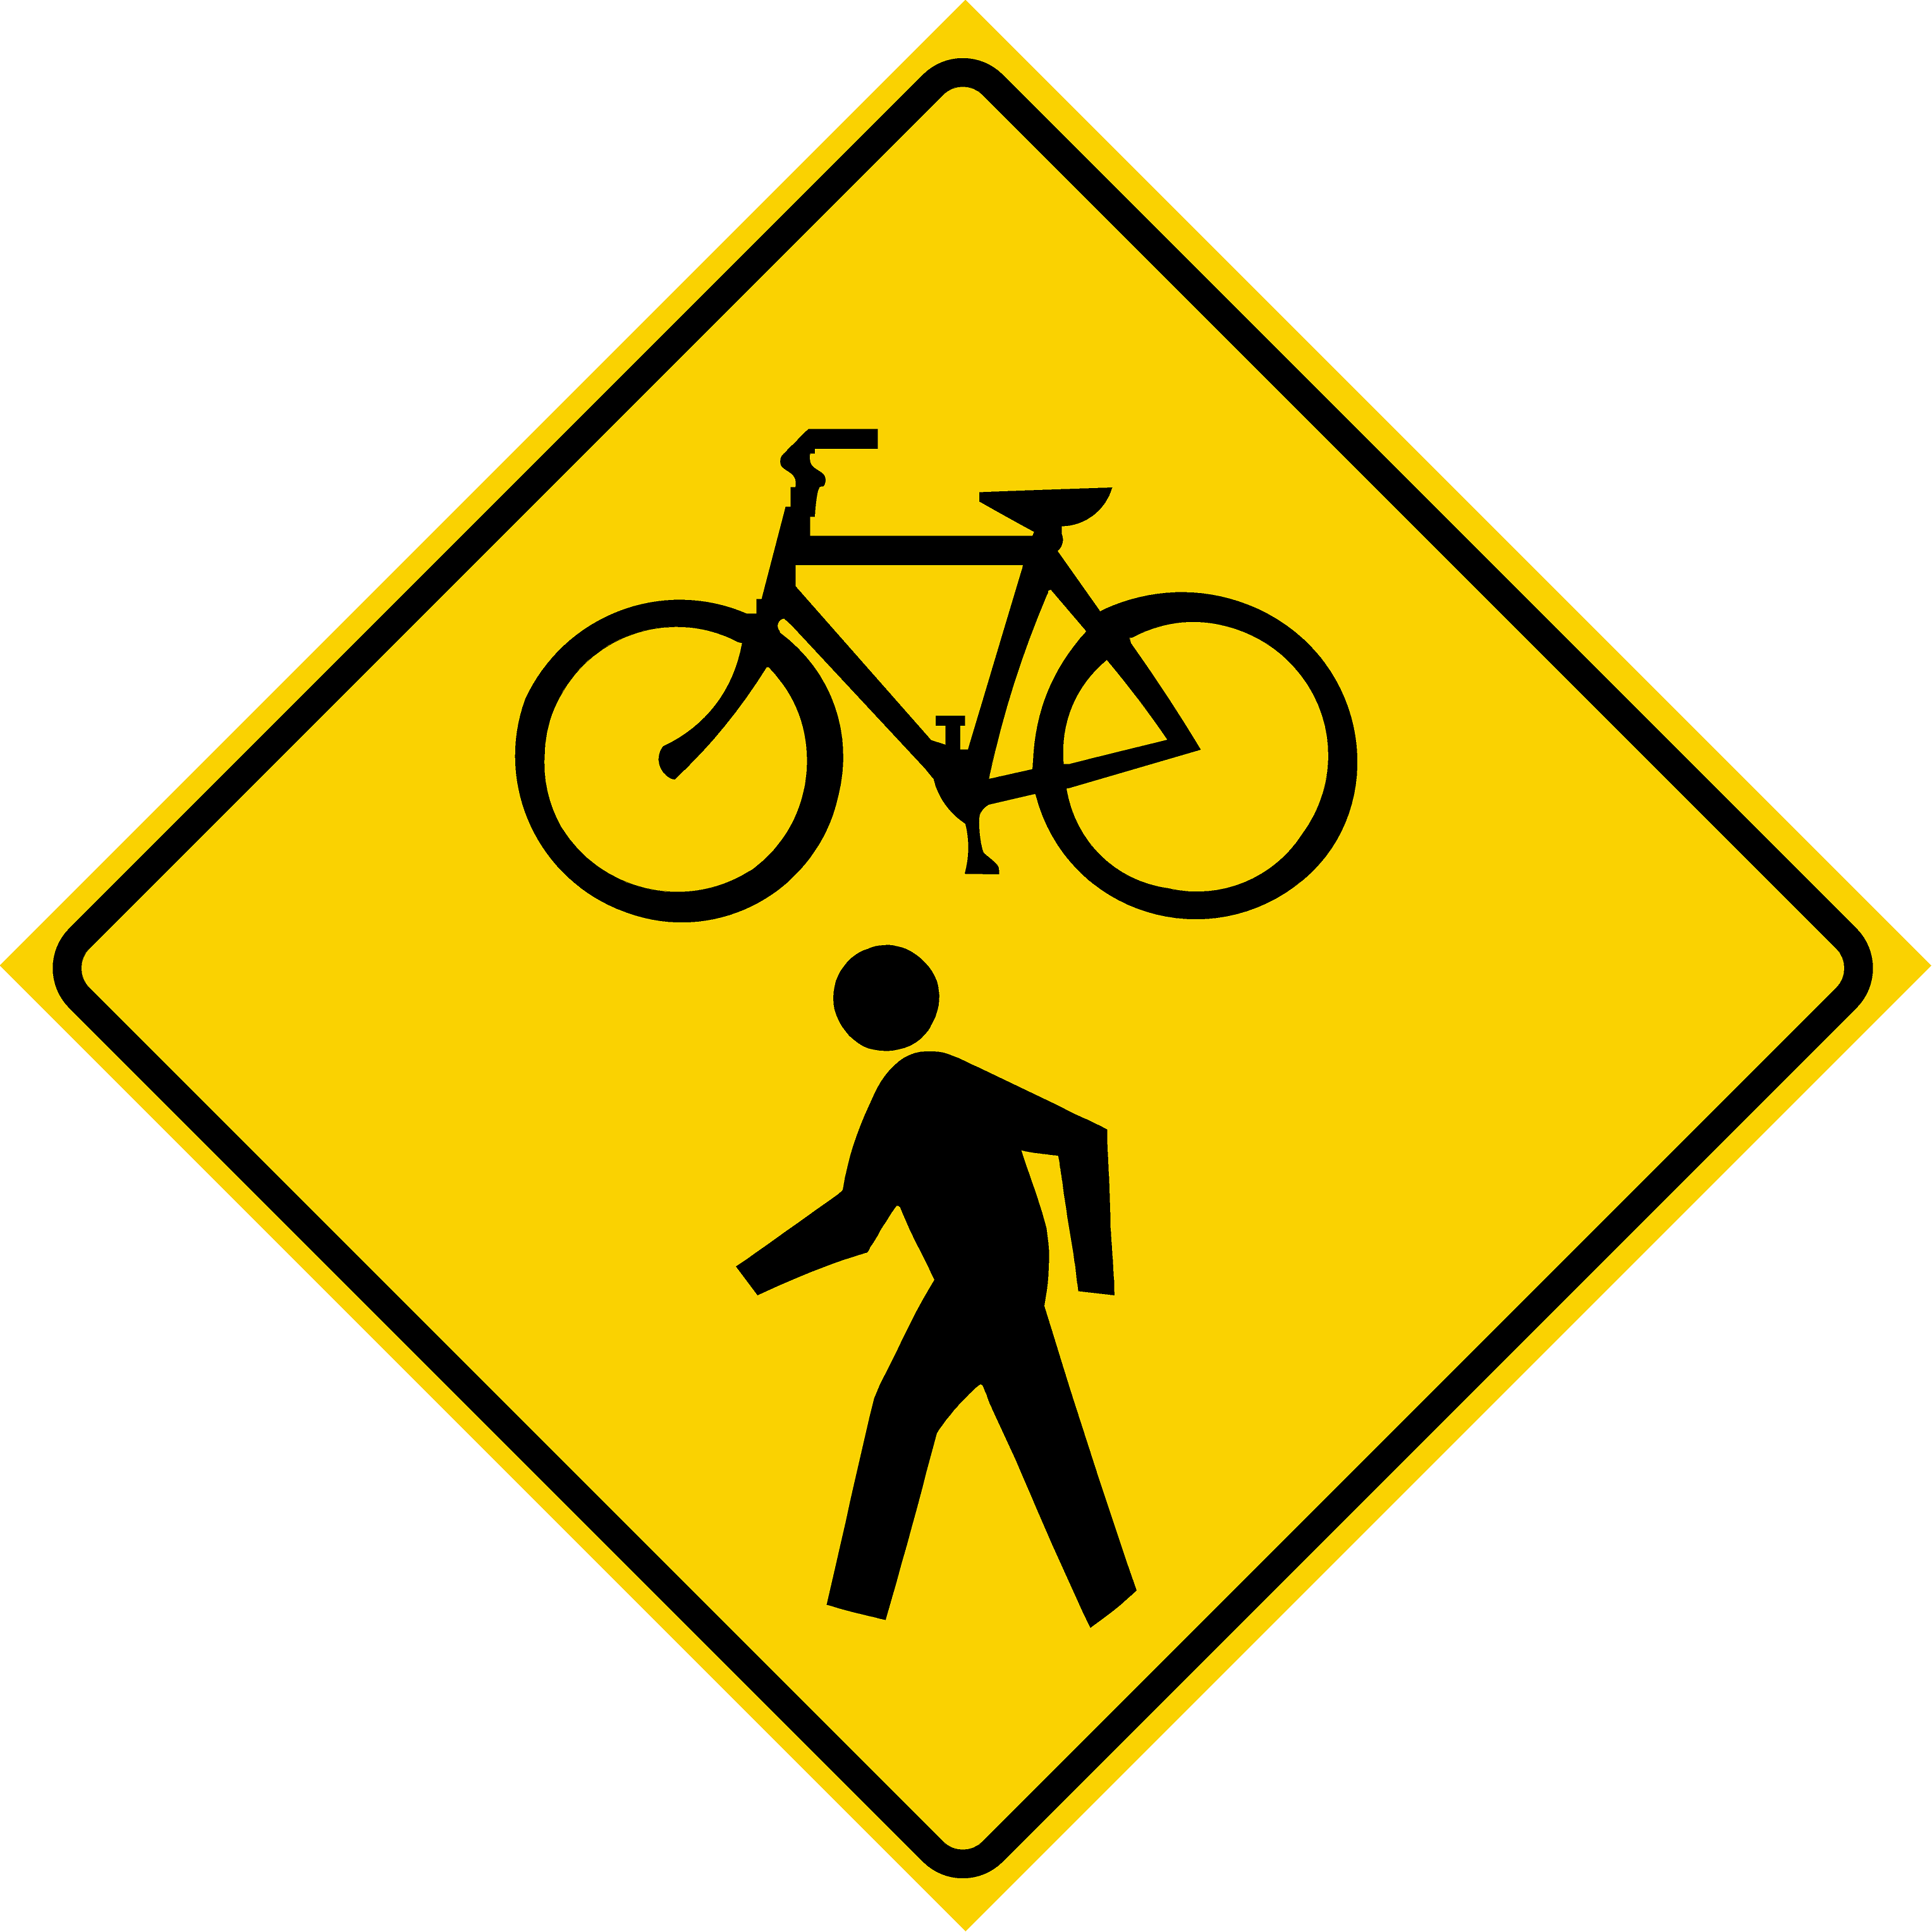 Bicycle and Pedestrian Crossing Symbol (W11-15)